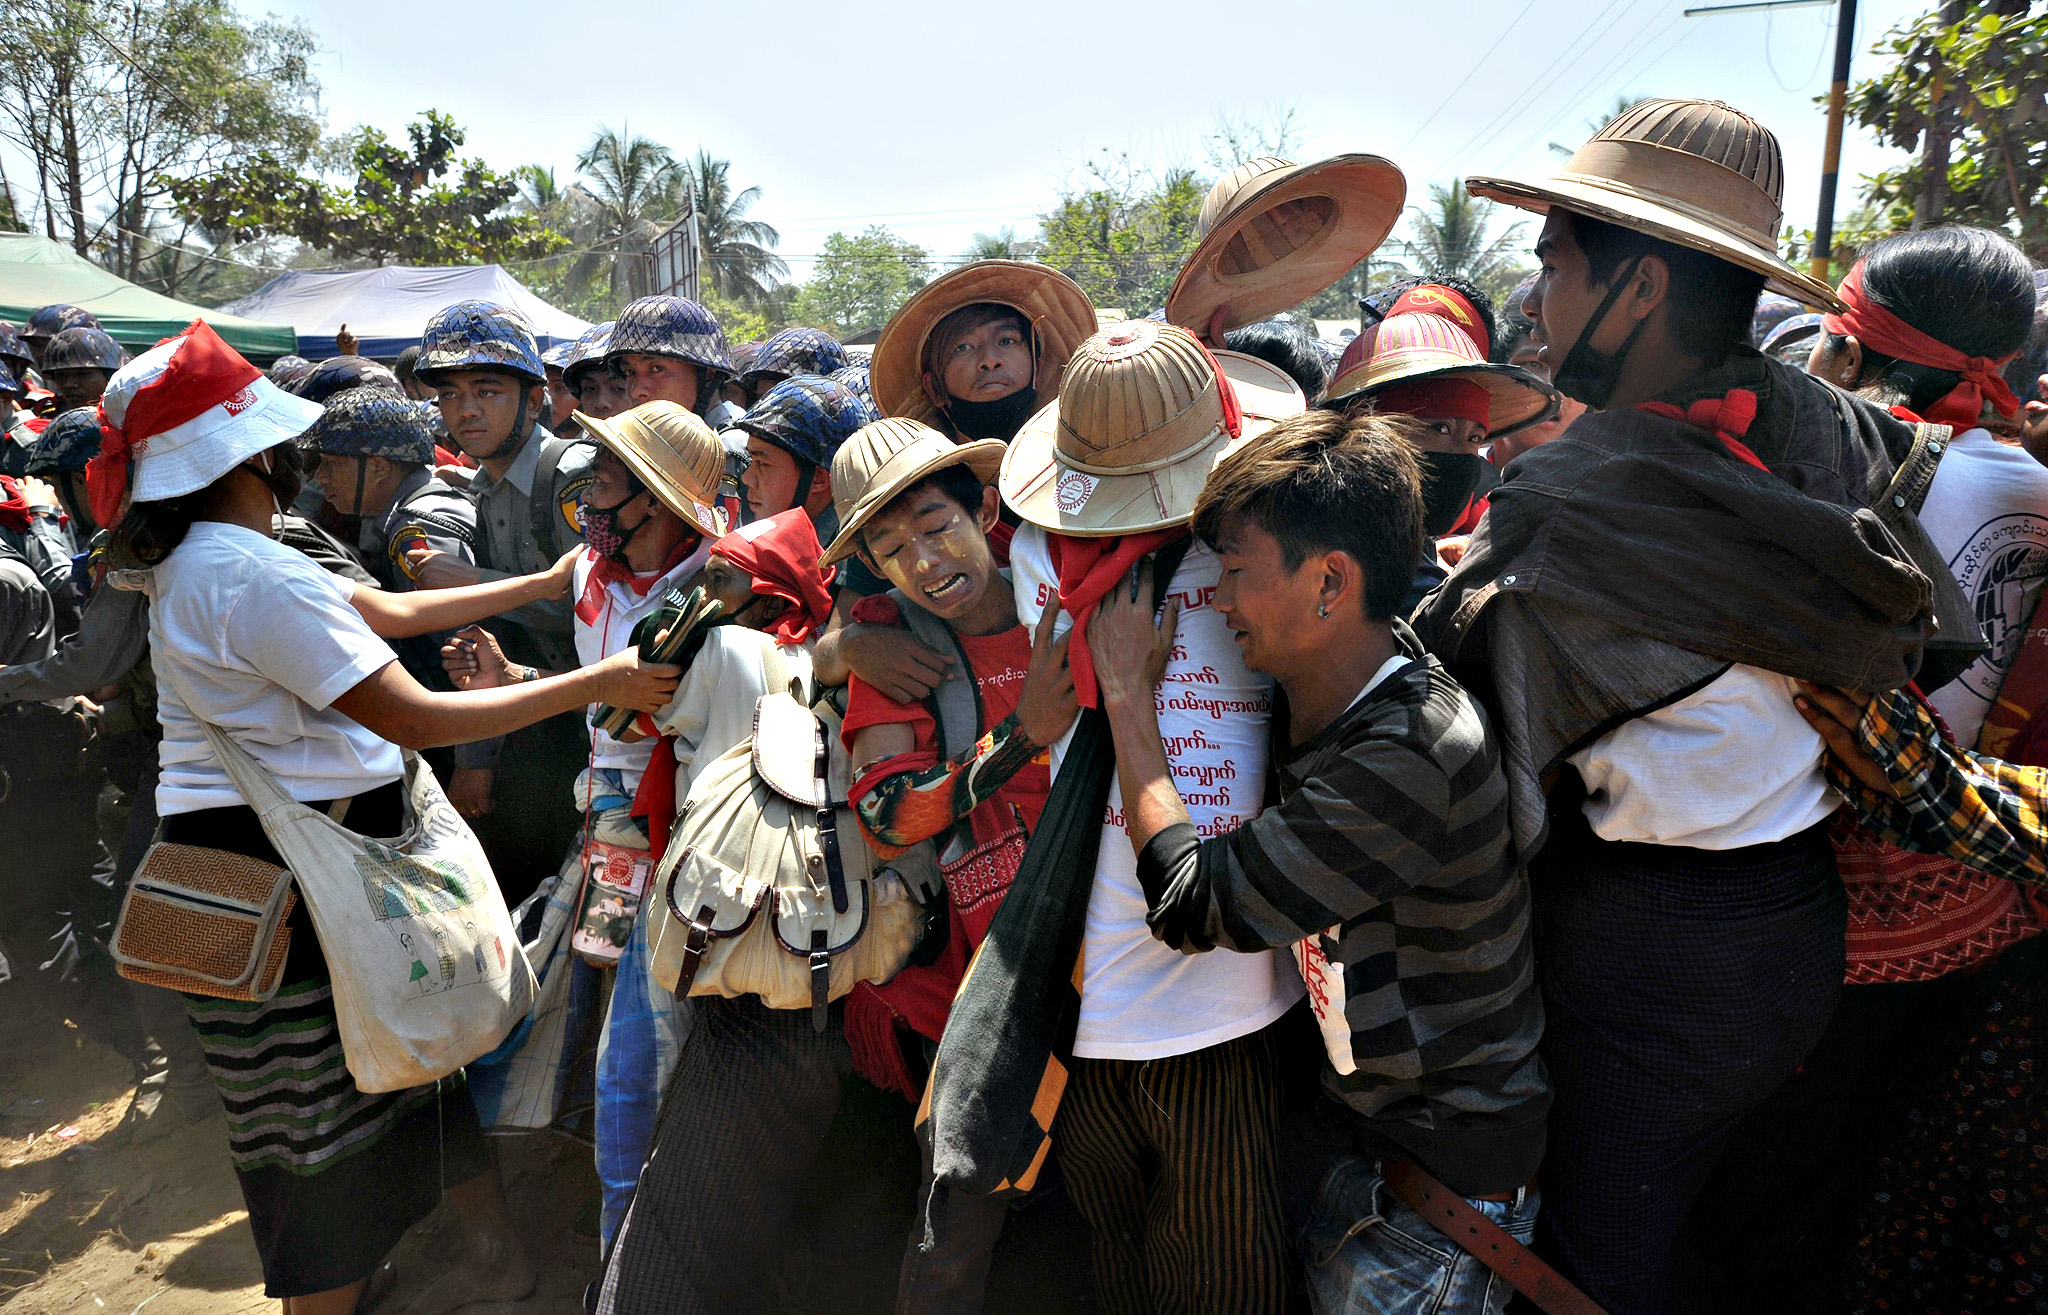 Myanmar student protesters and nationalists clash with riot police during a march in Letpadan town, some 130 kilometres (80 miles) north of Myanmar's main city on March 10, 2015. Student protesters have embarked on months of demonstrations calling for education reform, but plans by a core group to march to Yangon have been halted by police in the dusty central town of Letpadan, who have surrounded around 150 activists since March 2.